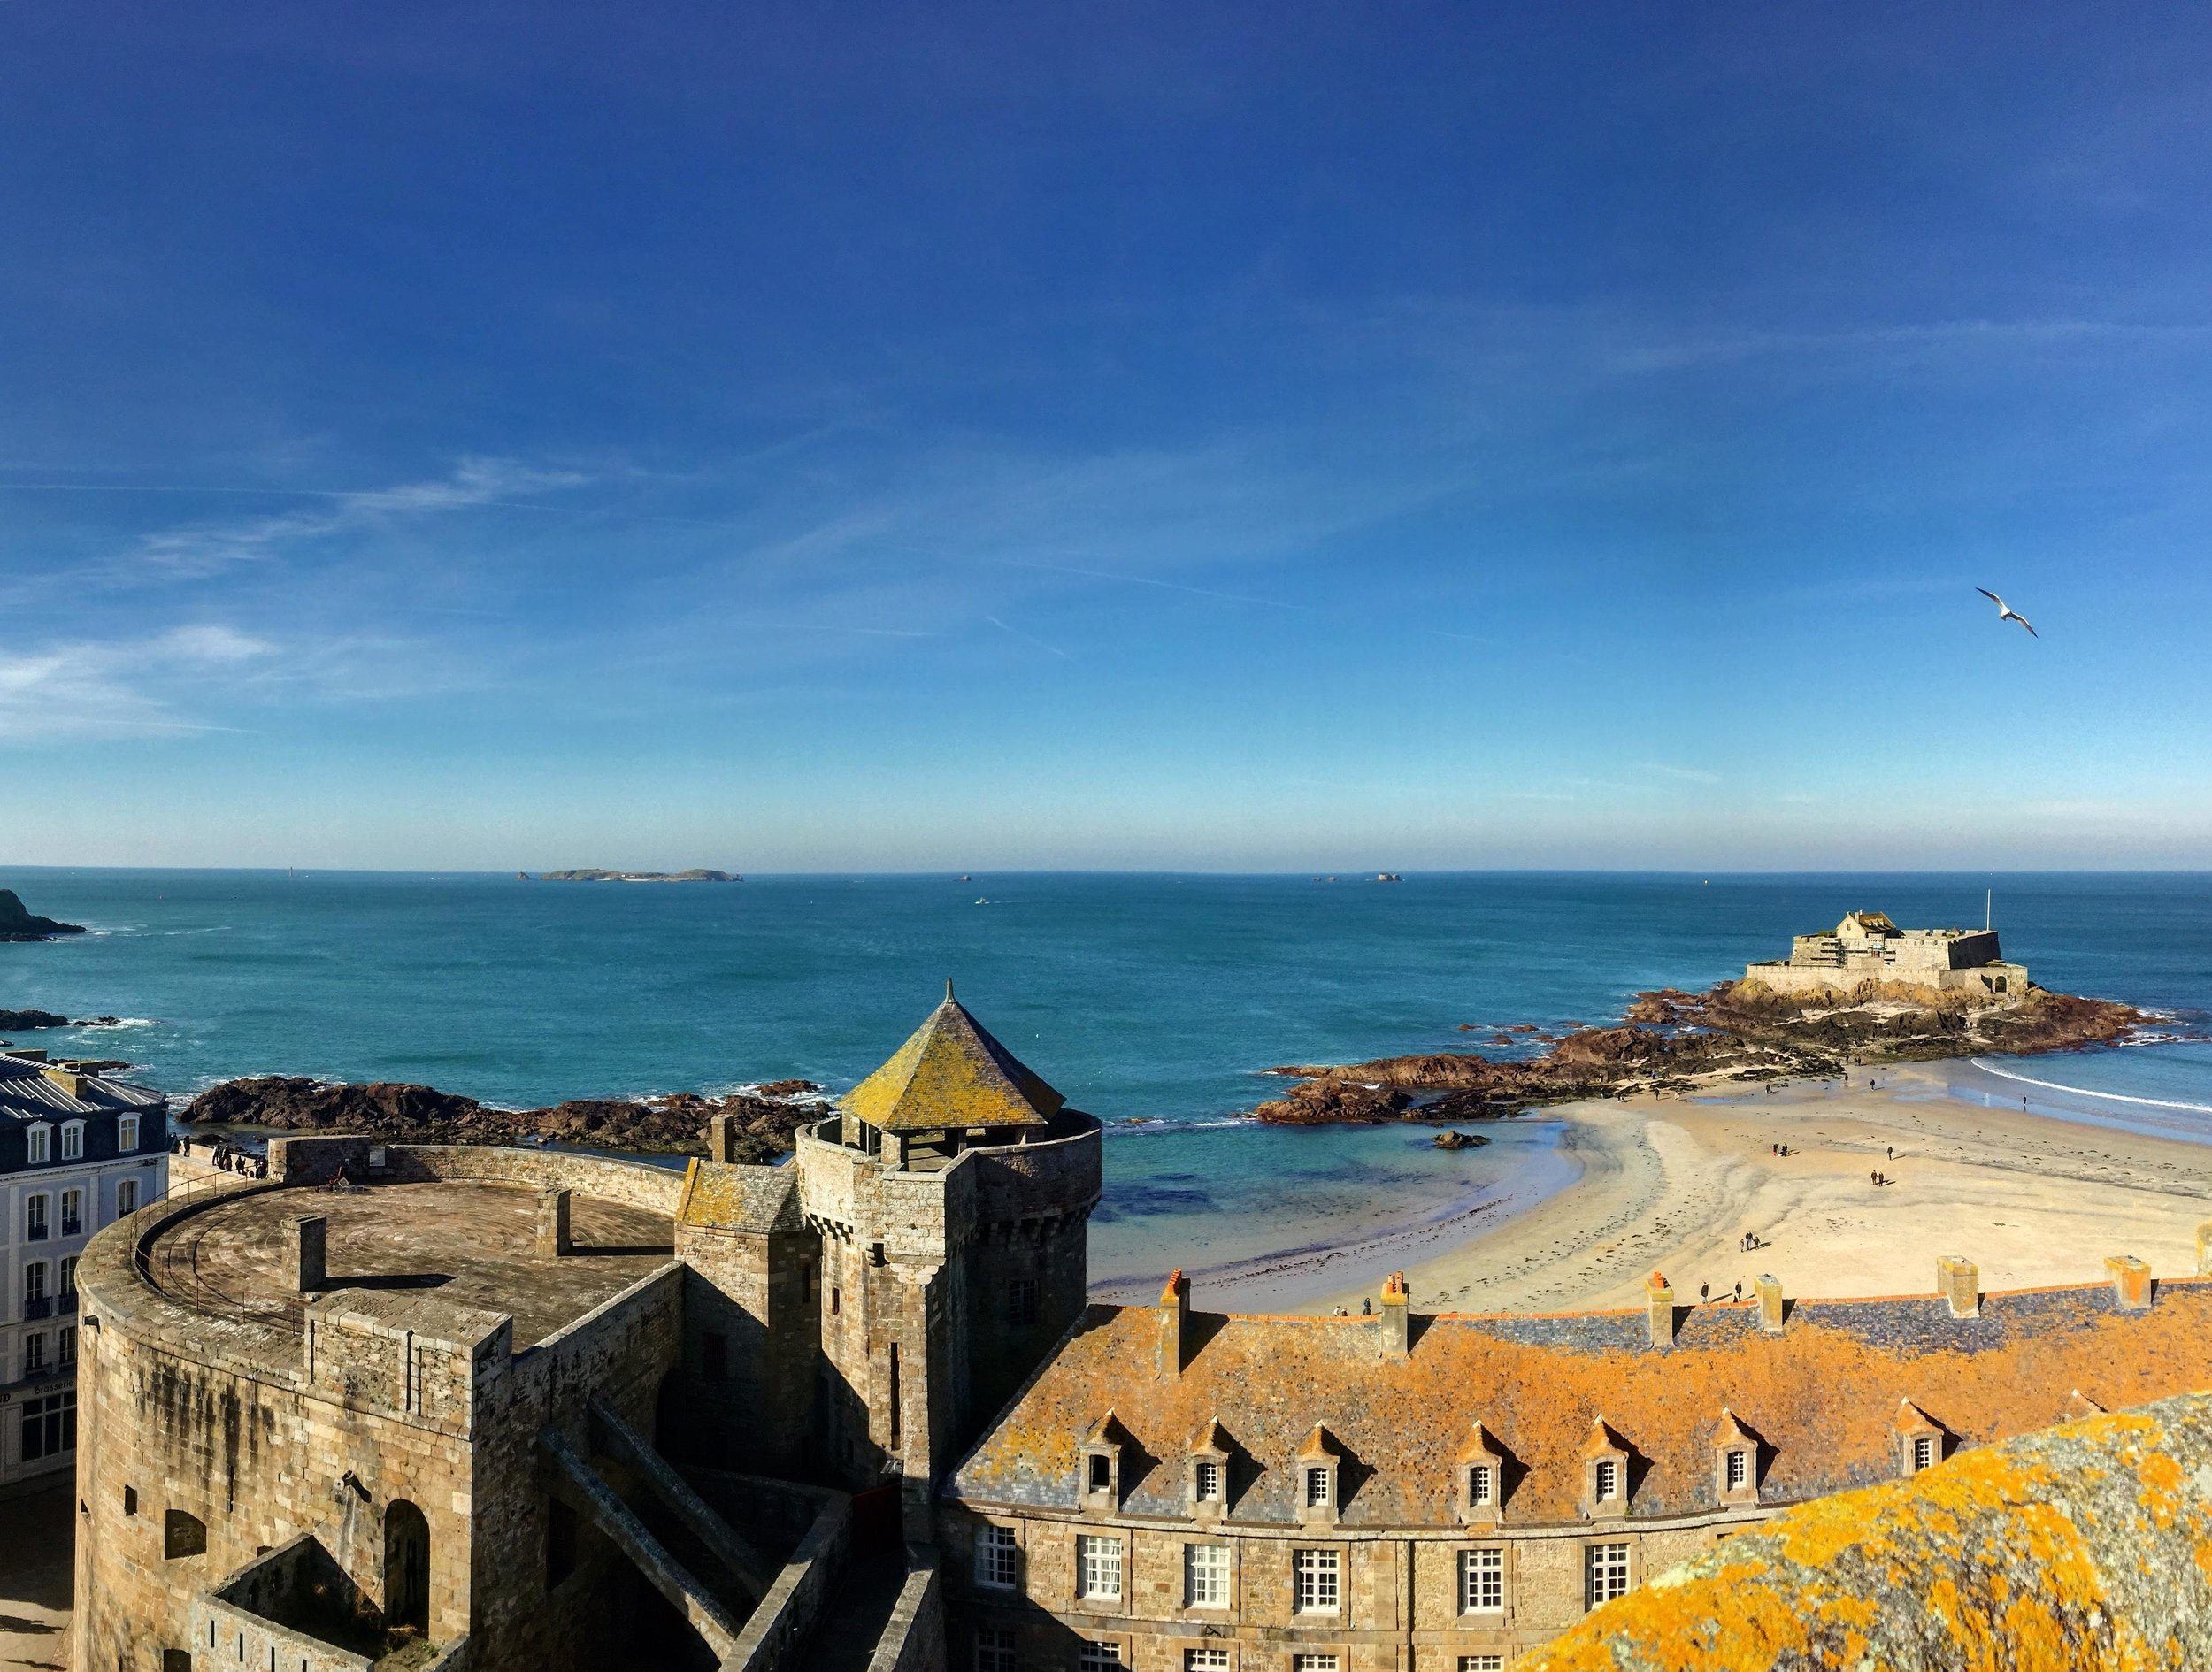 360 degrees of this … indescribable. To the right you can see the  Fort National  built in the 1600s to protect the port.